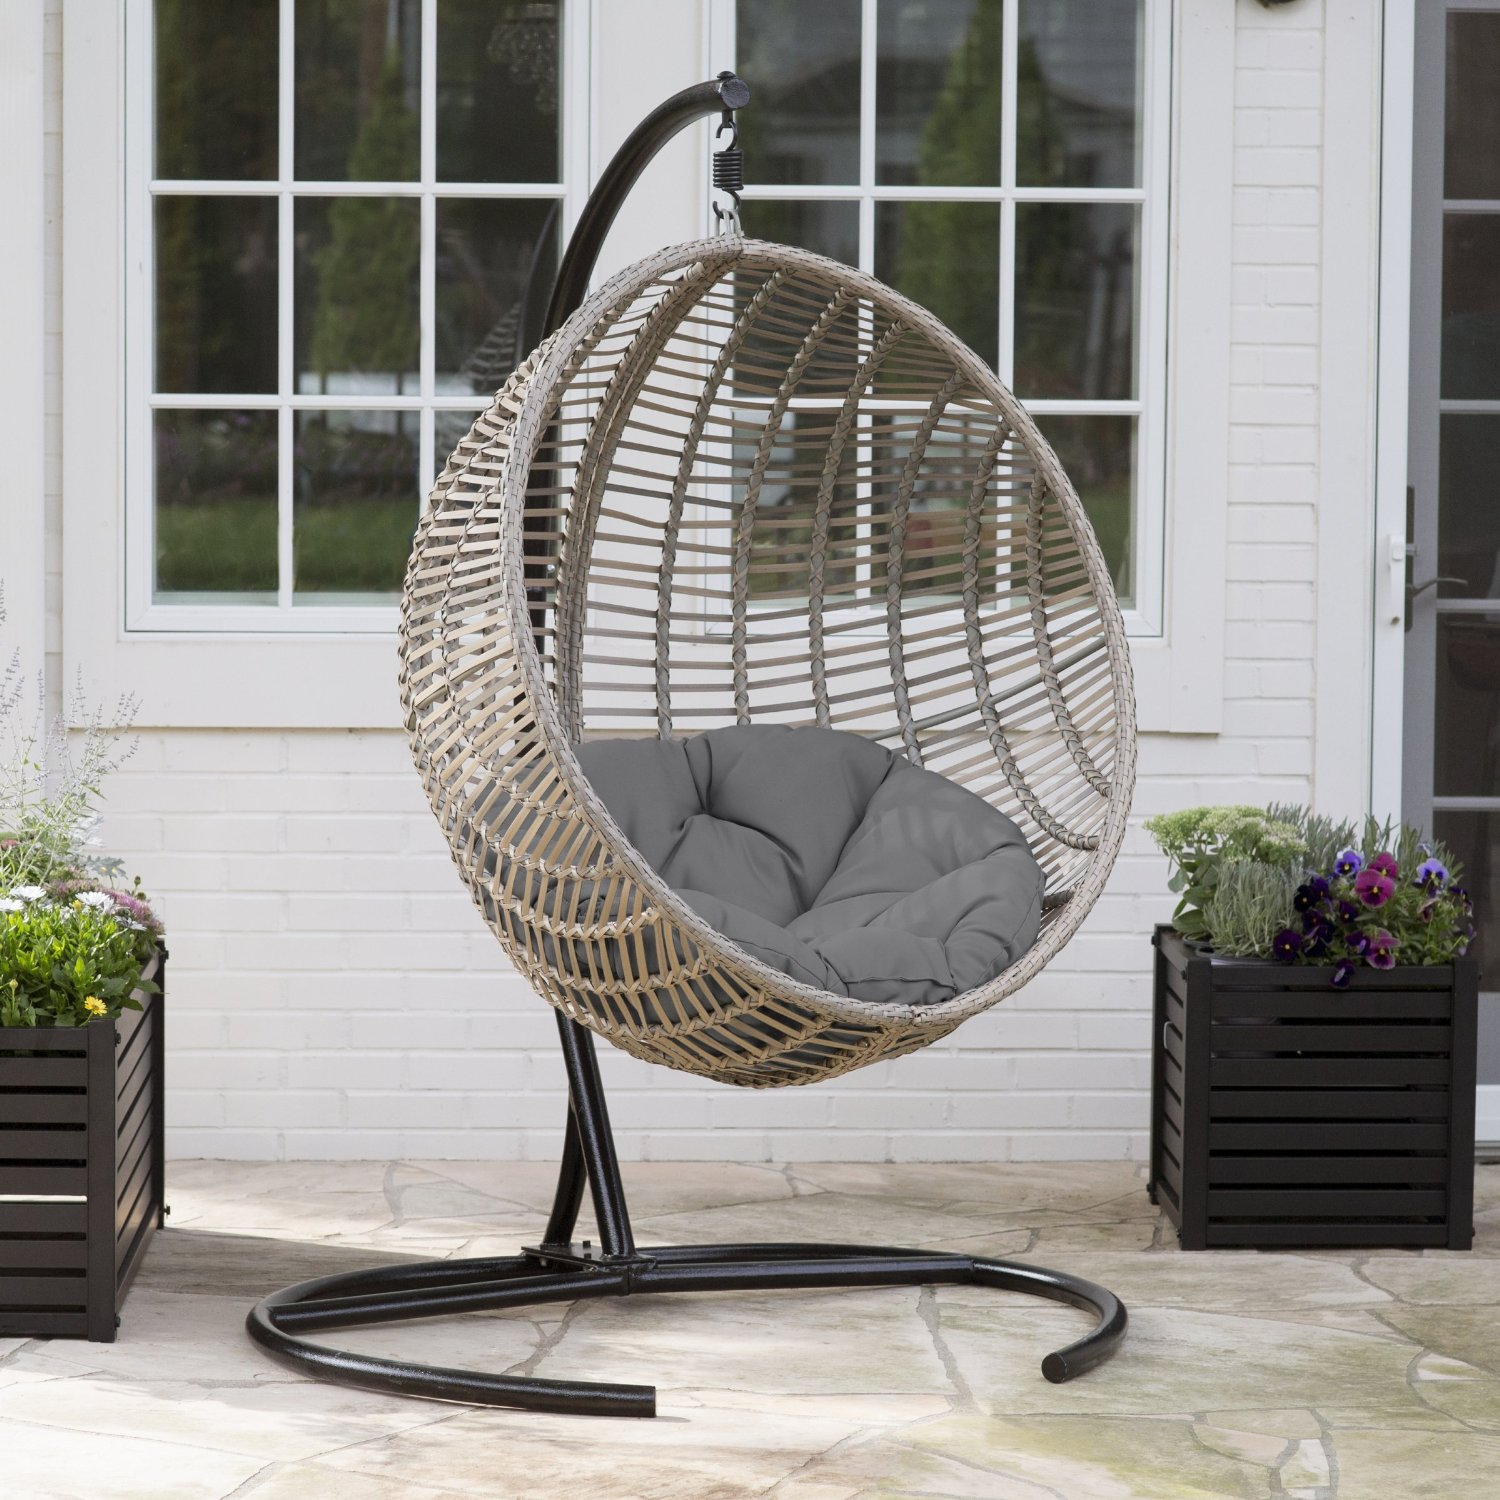 Swinging Chair Outdoor Review Wicker Hanging Chair With Stand By Island Bay